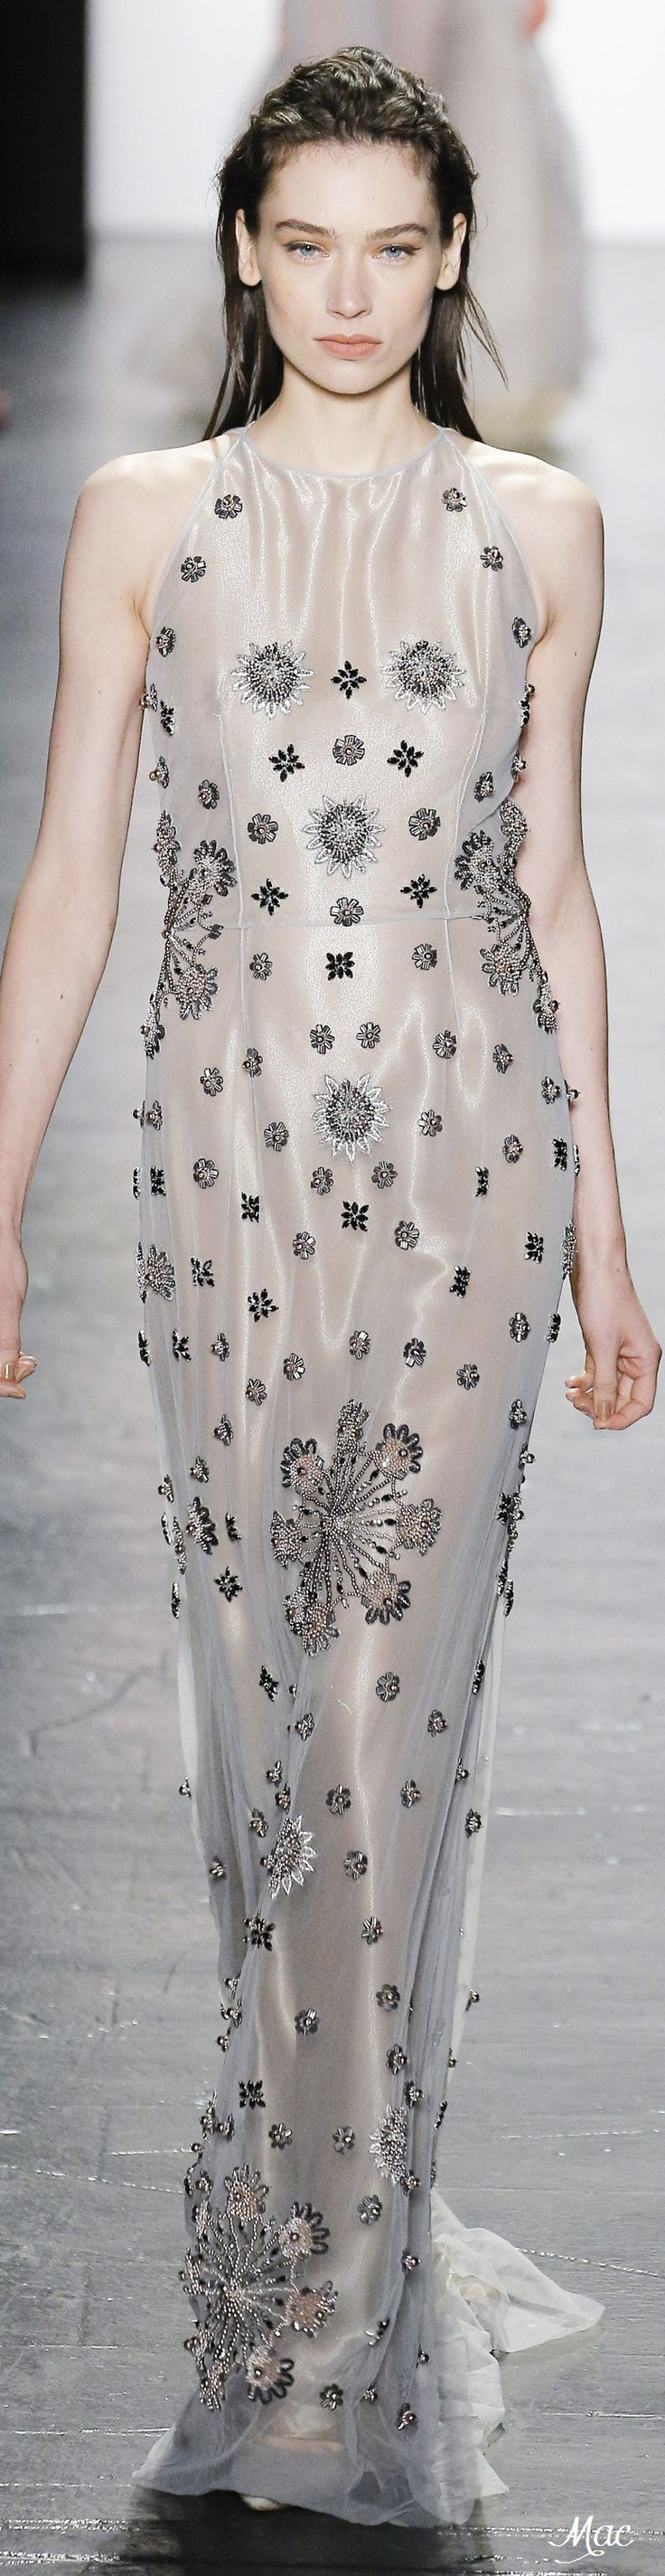 Spring 2017 Ready-to-Wear Dennis Basso